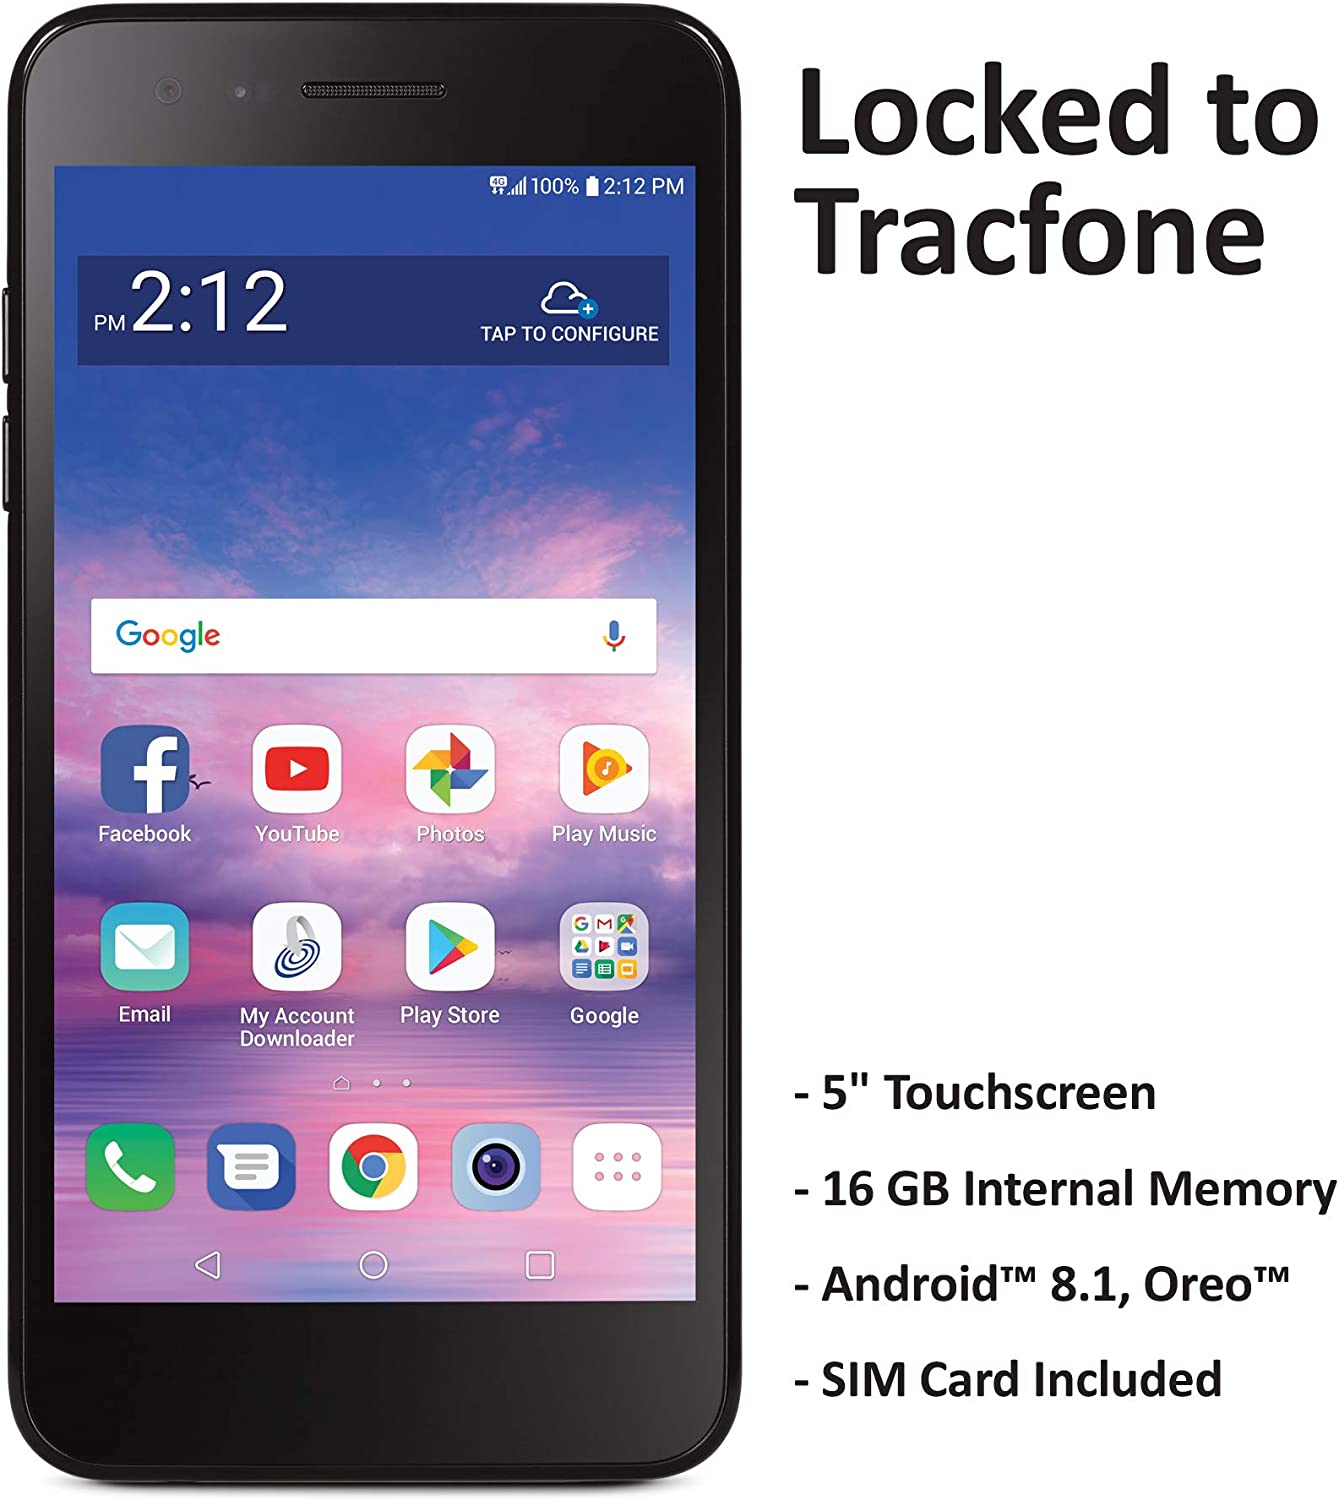 TracFone LG Rebel 4 4G LTE Prepaid Smartphone (Locked) - Black - 16GB - Sim Card Included - CDMA